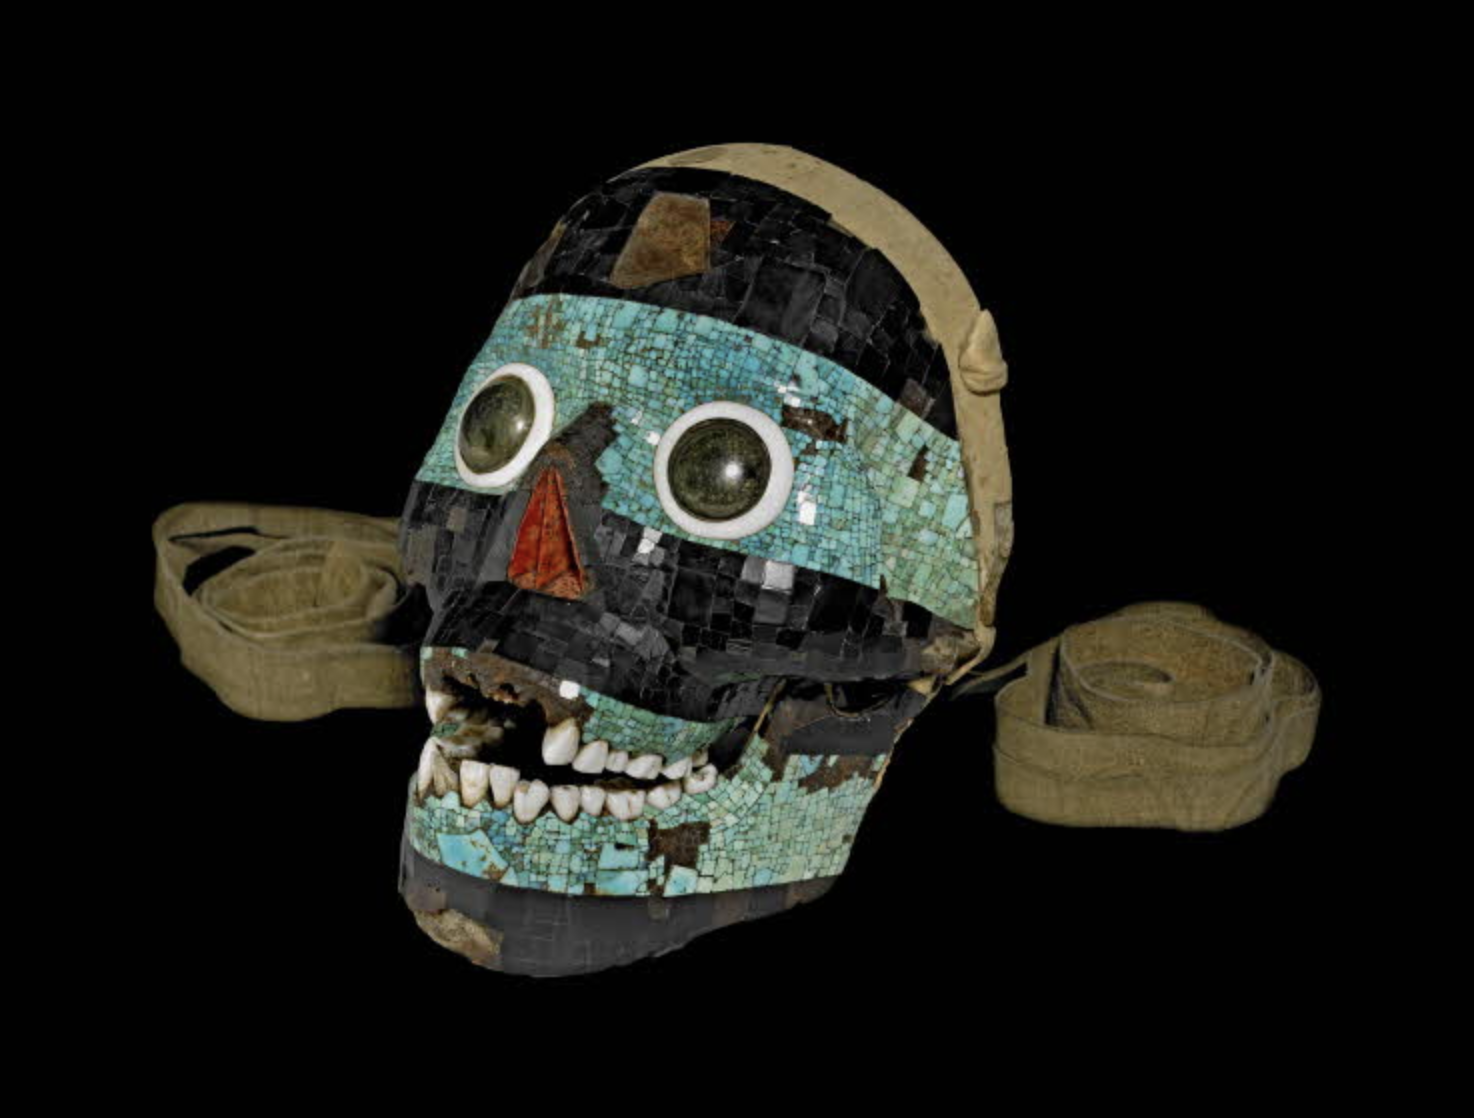 A photograph of a skull-like mask akin to the one above, crusted with gemstones in turquoise and black. The mask shows damage, with some teeth broken and places where the stones have fallen away.